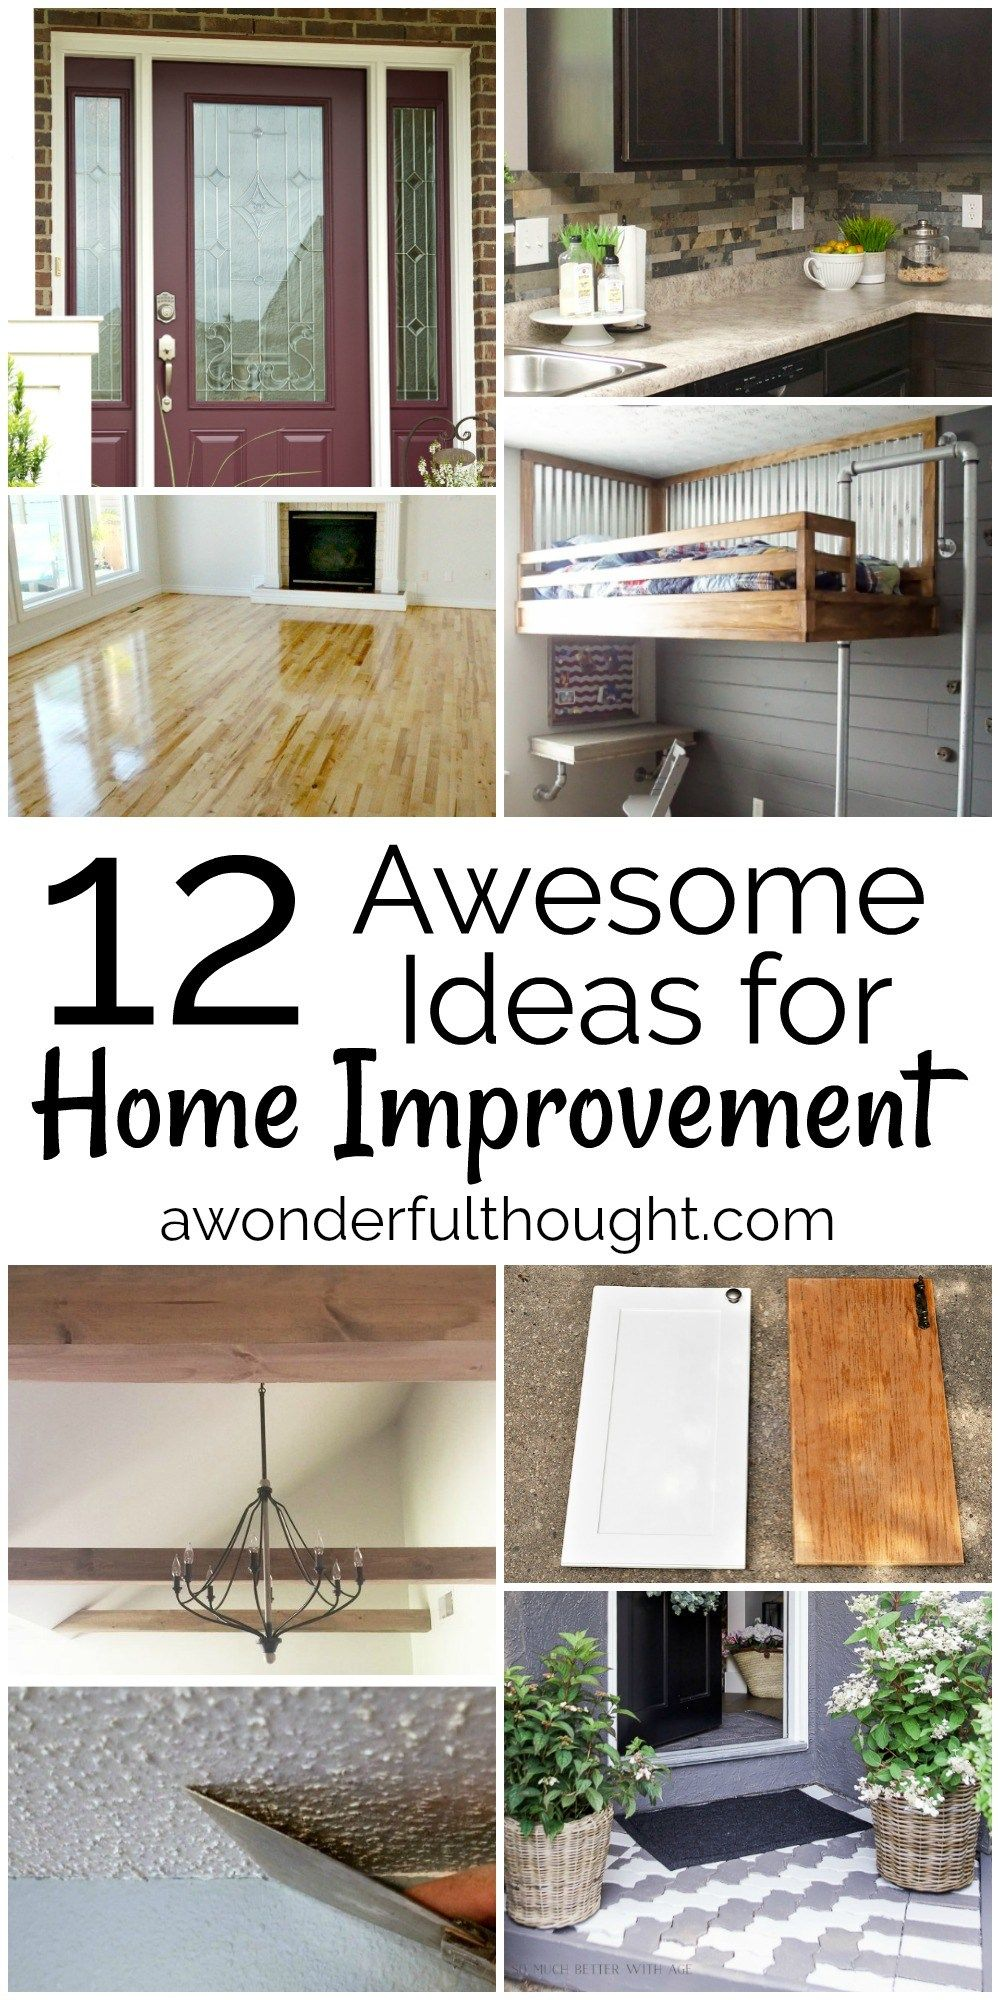 12 Awesome Home Improvement Ideas | Budgeting